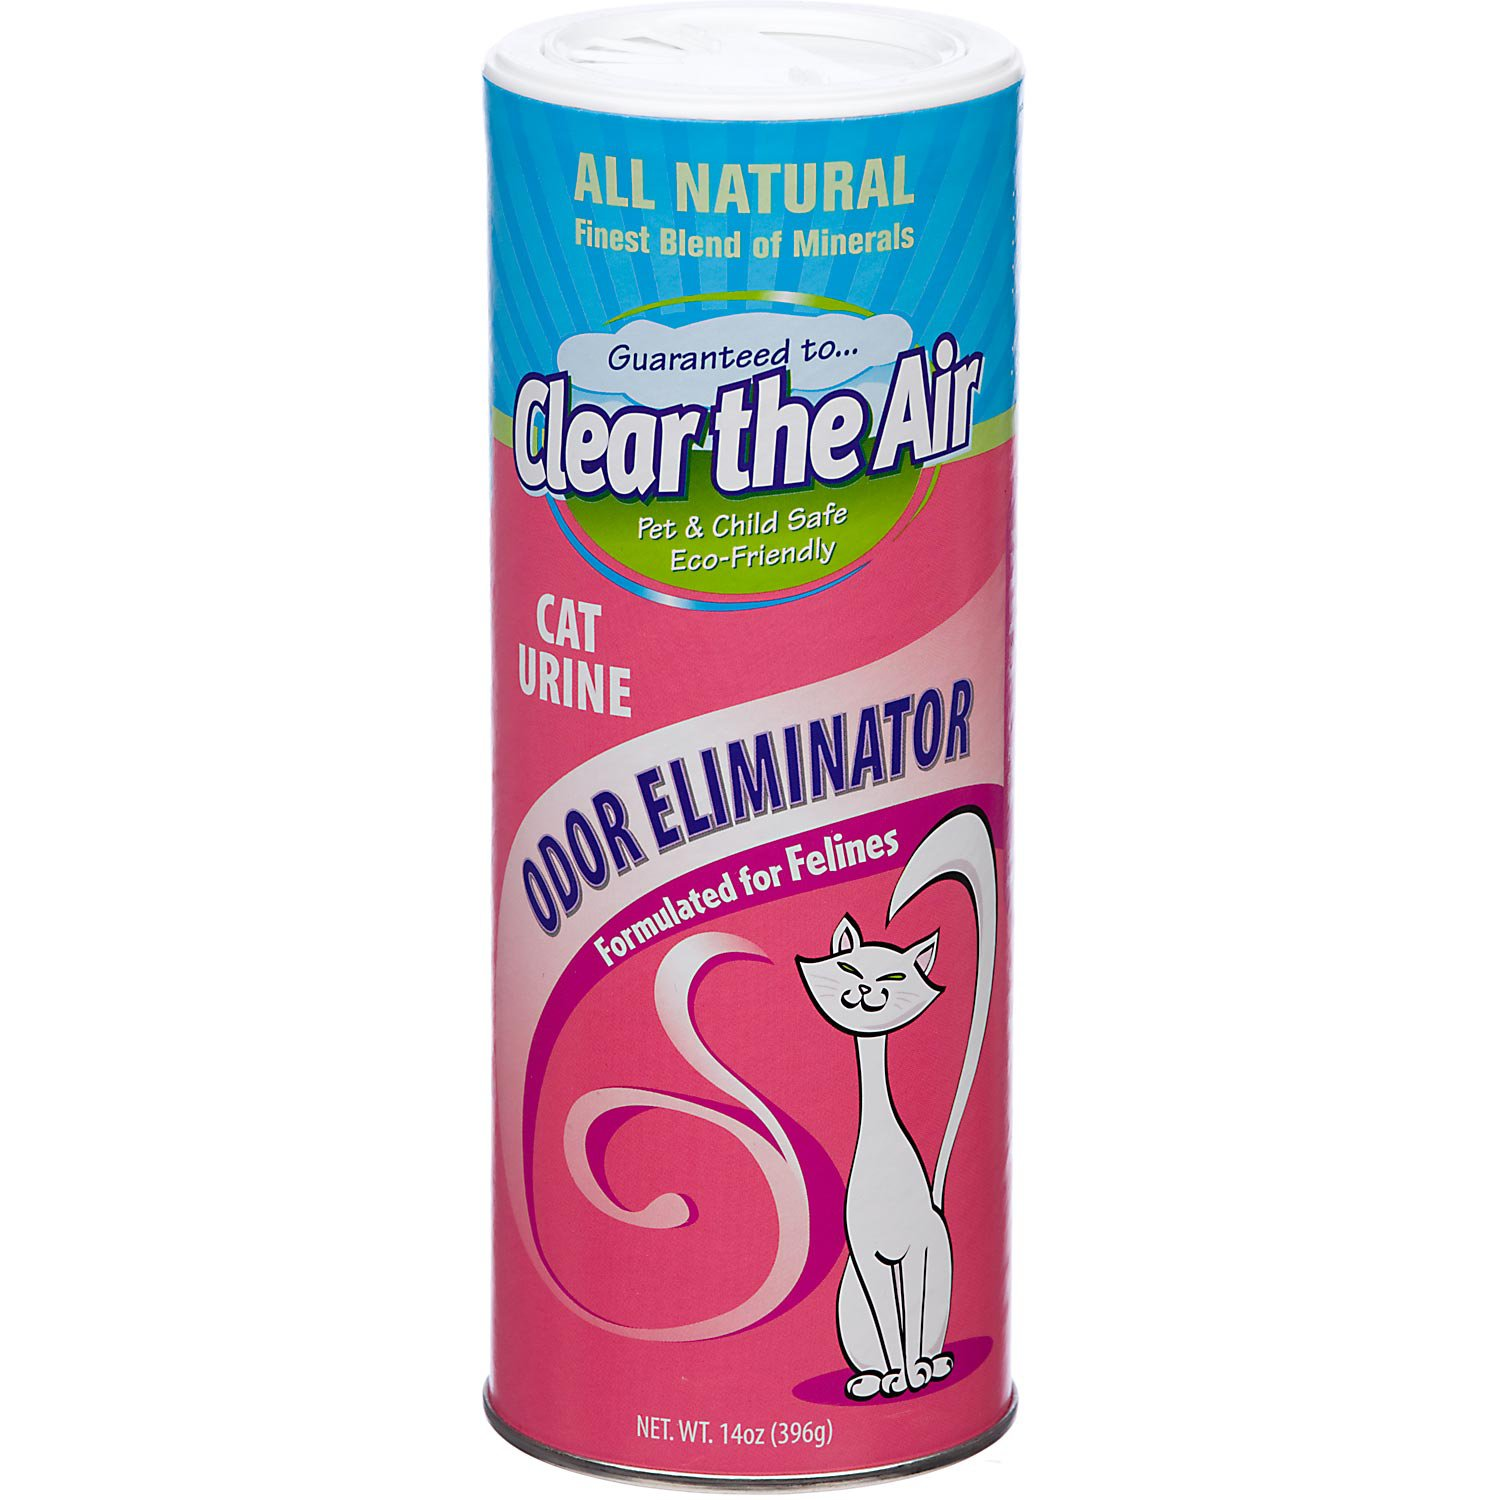 Earth Care Clear the Air Cat Urine Odor Eliminator